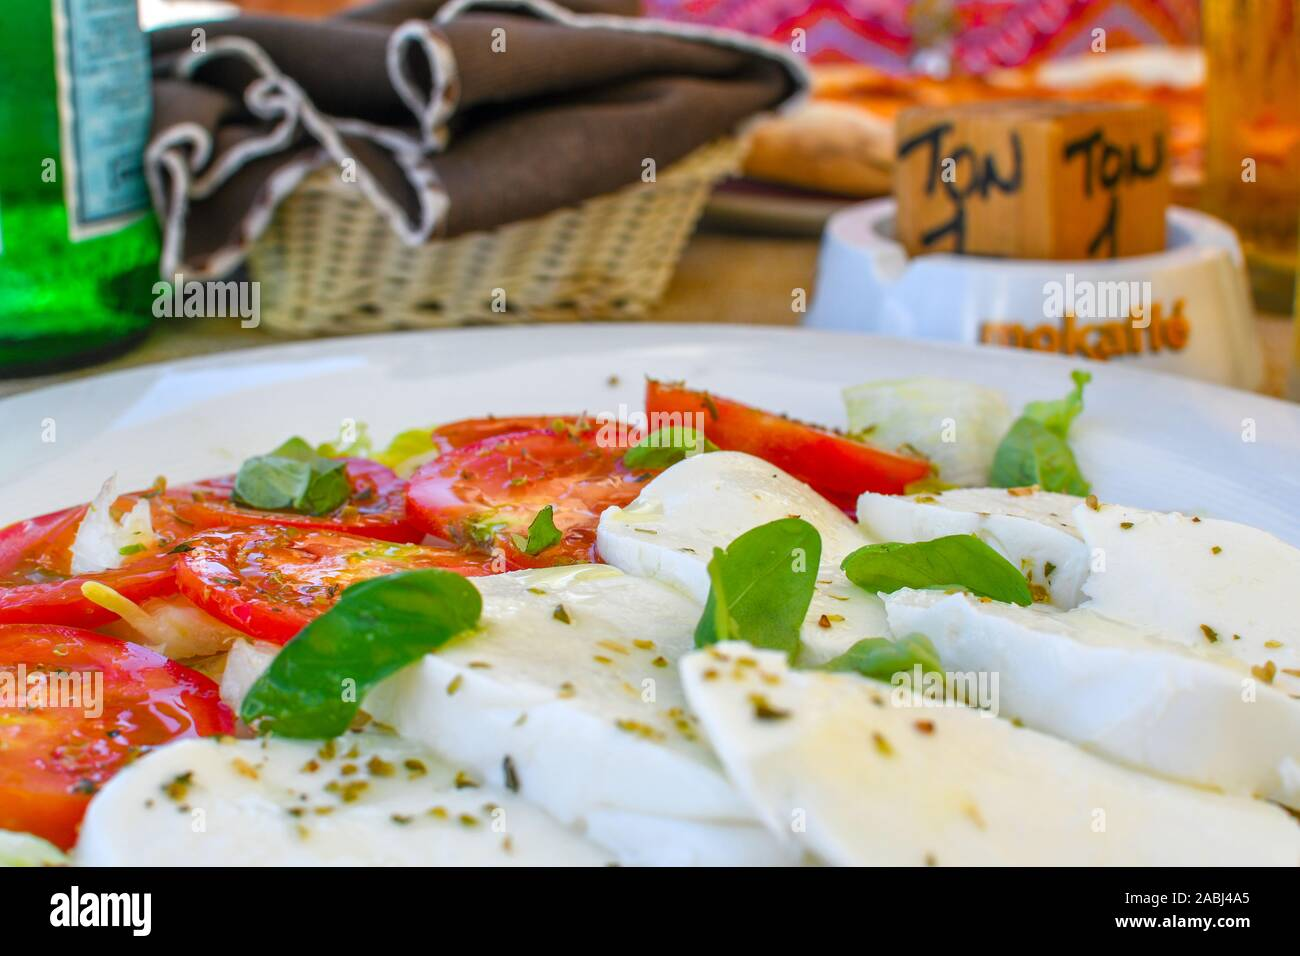 A colorful caprese salad, basket of bread and bottle of water on a table in an outdoor sidewalk cafe in Brindisi Italy. Stock Photo